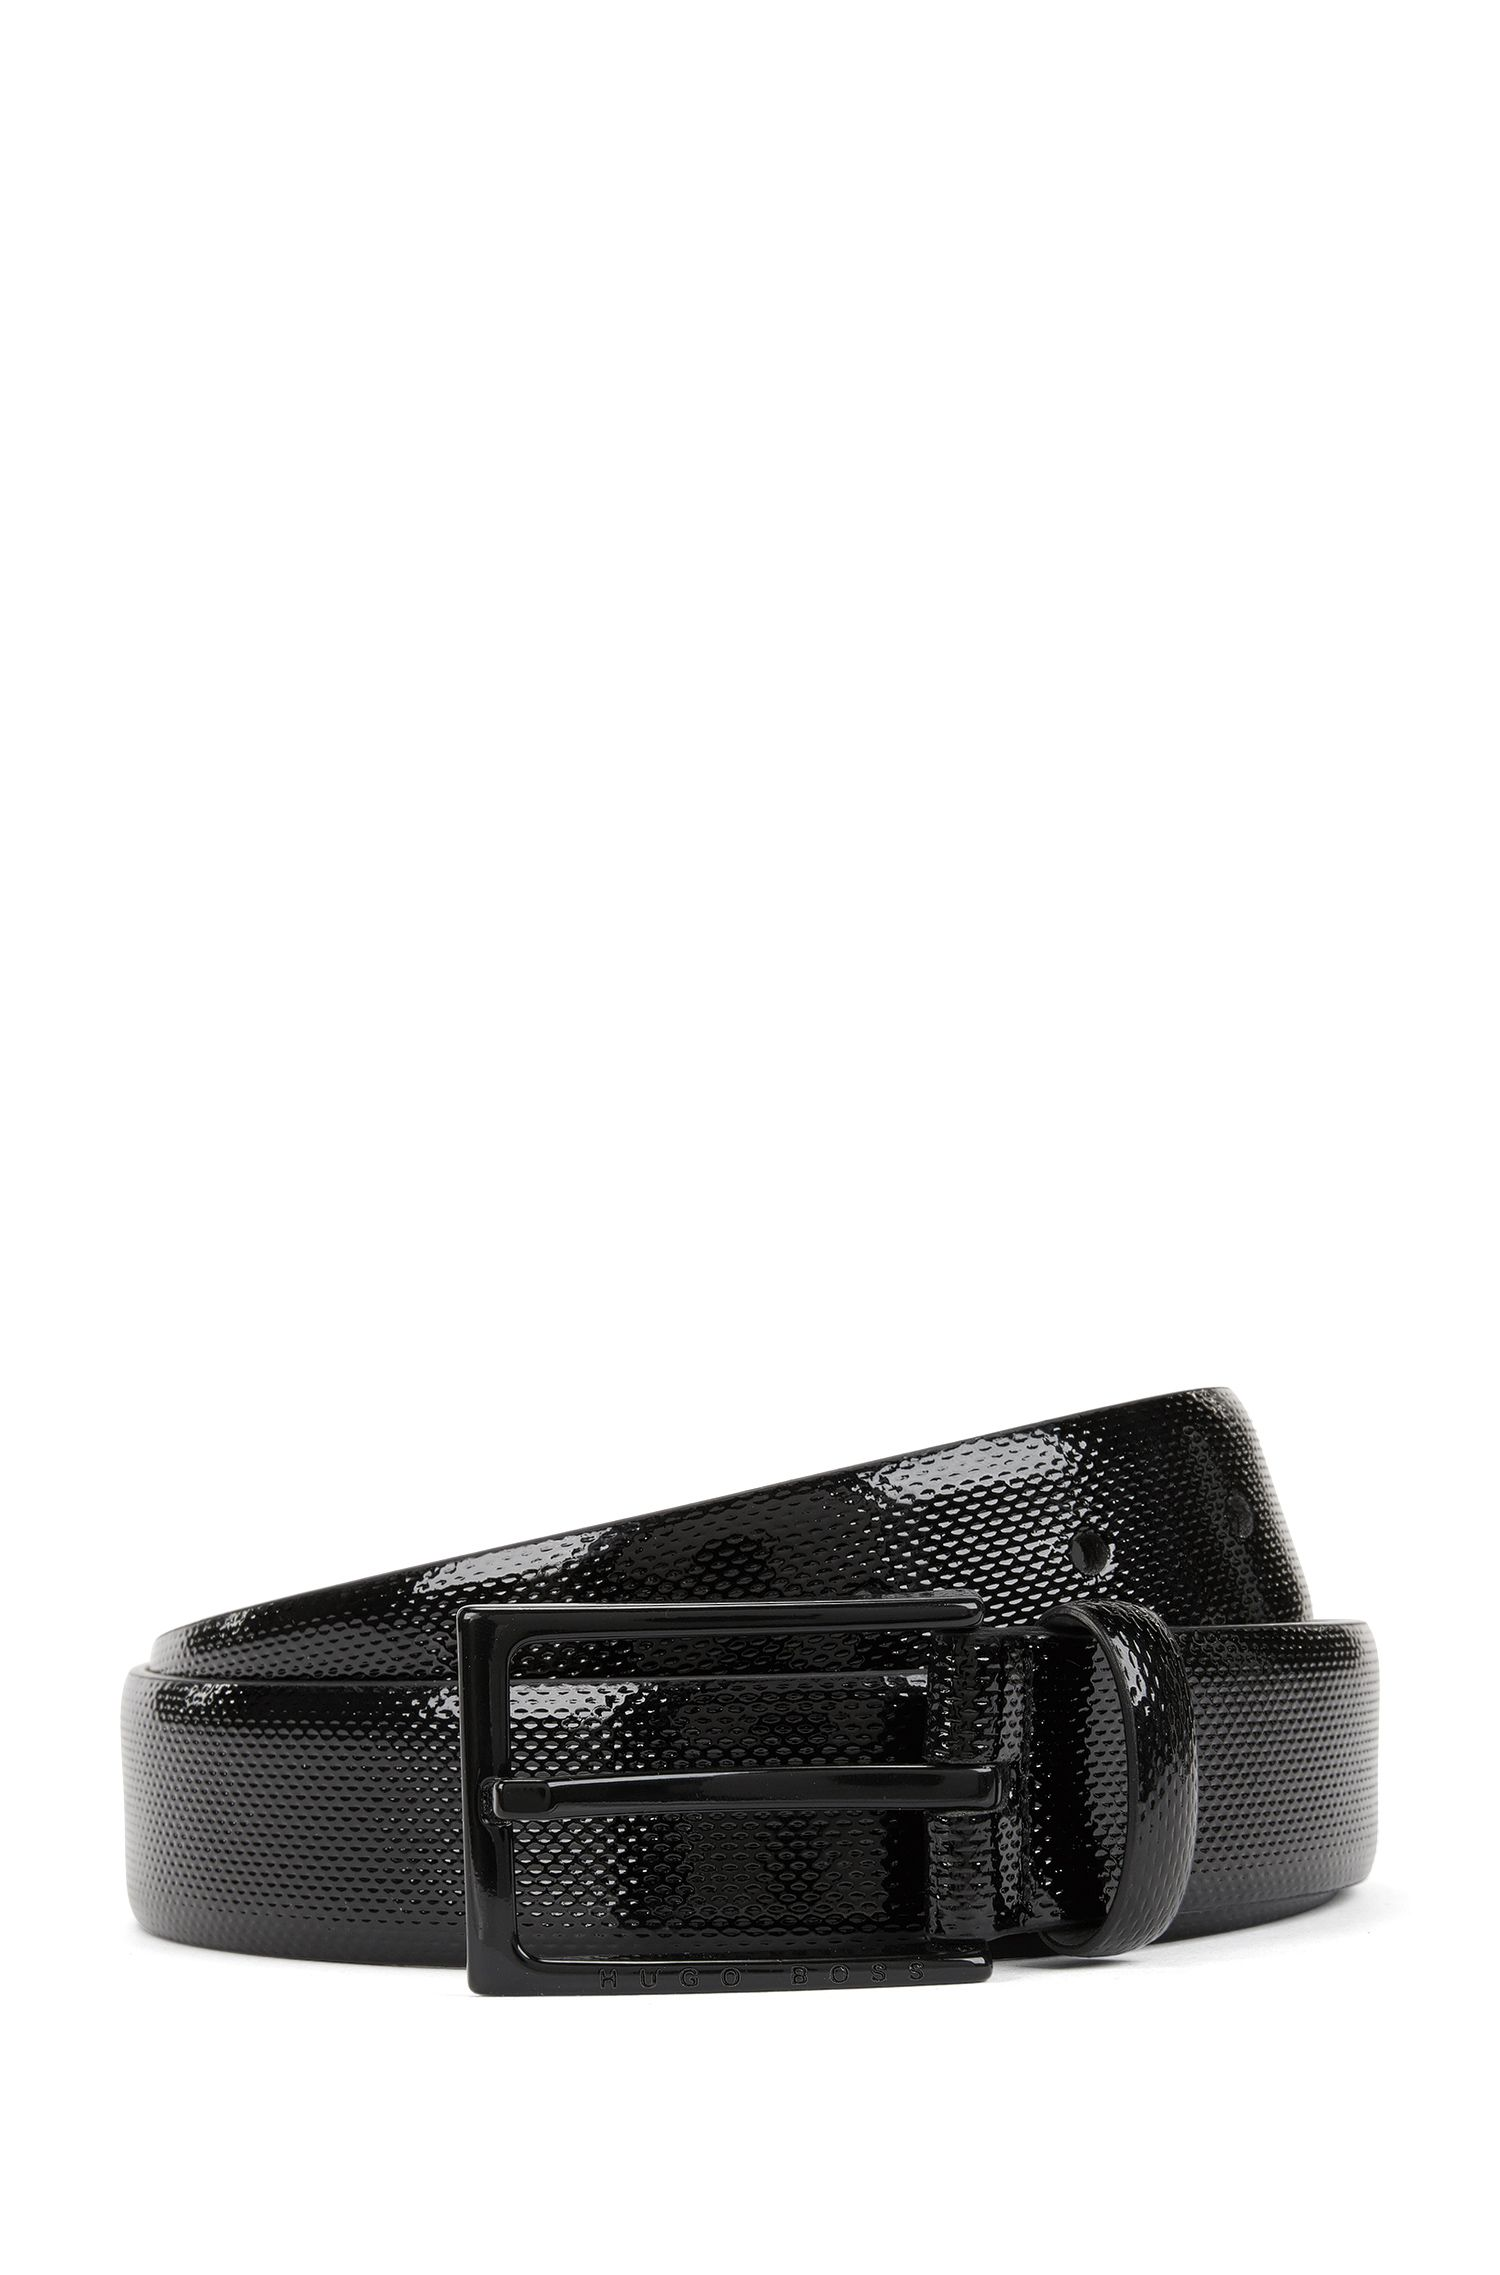 Patent embossed leather belt with black varnished pin-buckle